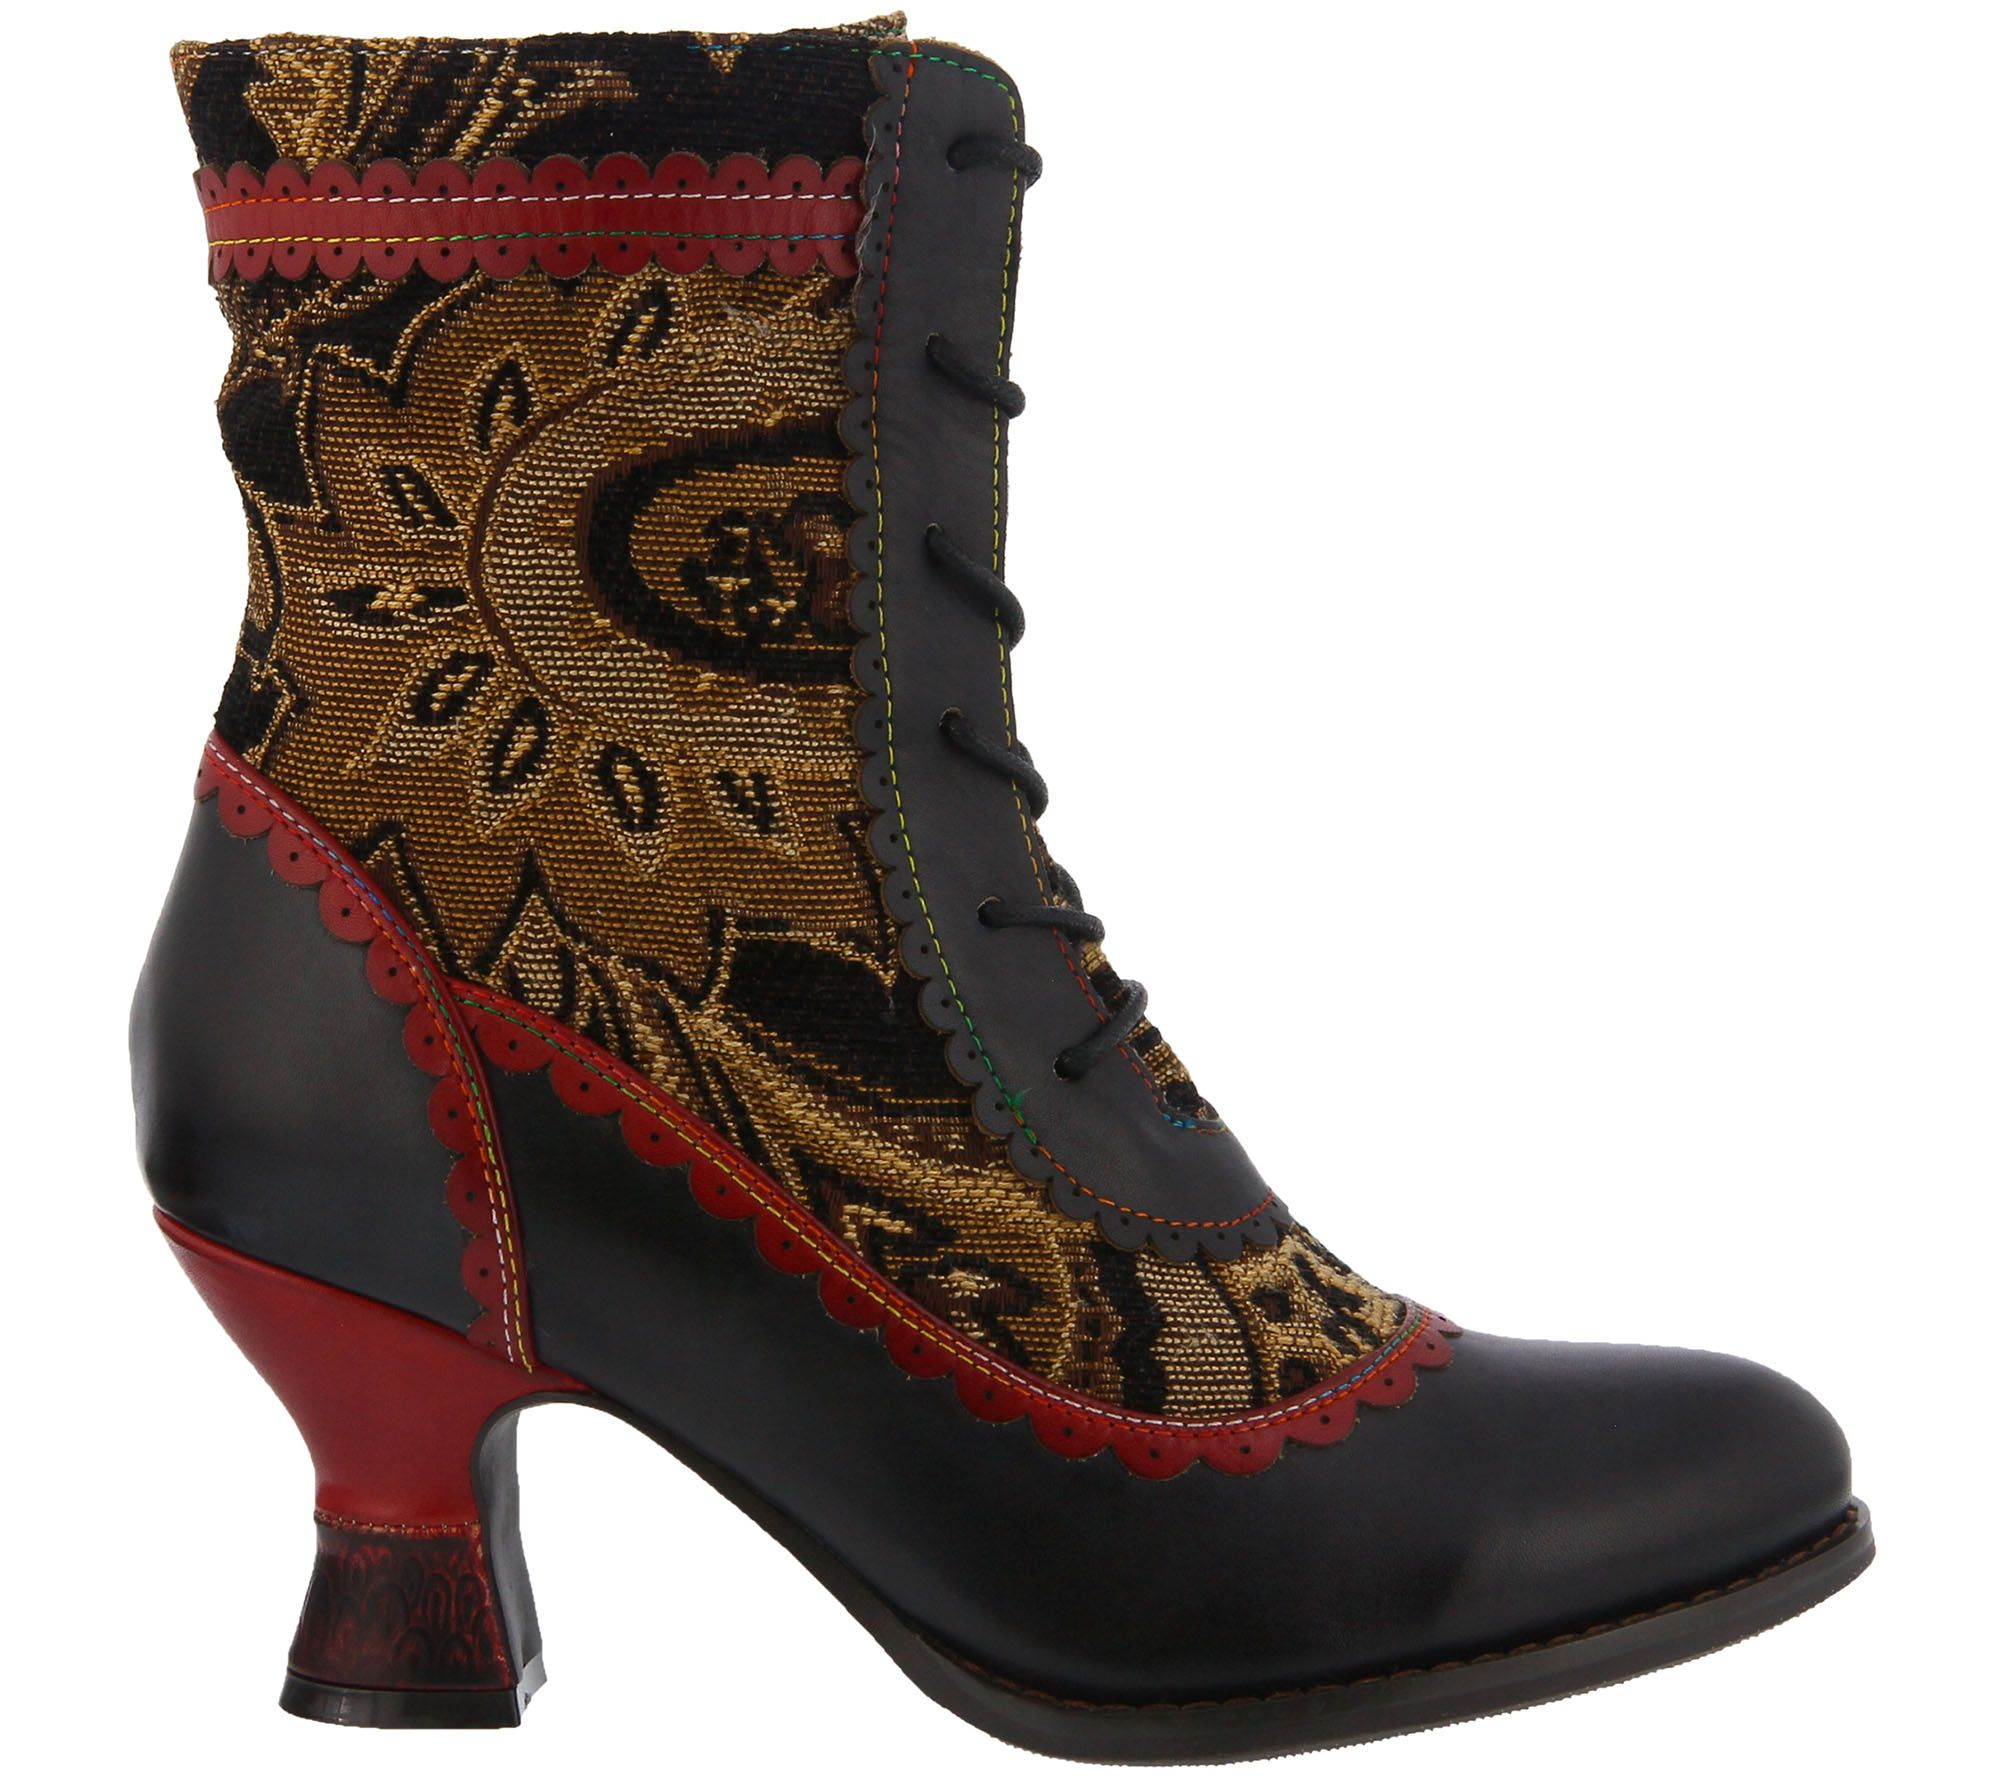 d678ba7bd4f36 L Artiste by Spring Step Leather and Textile Boots - Bewitch - Page 1 —  QVC.com